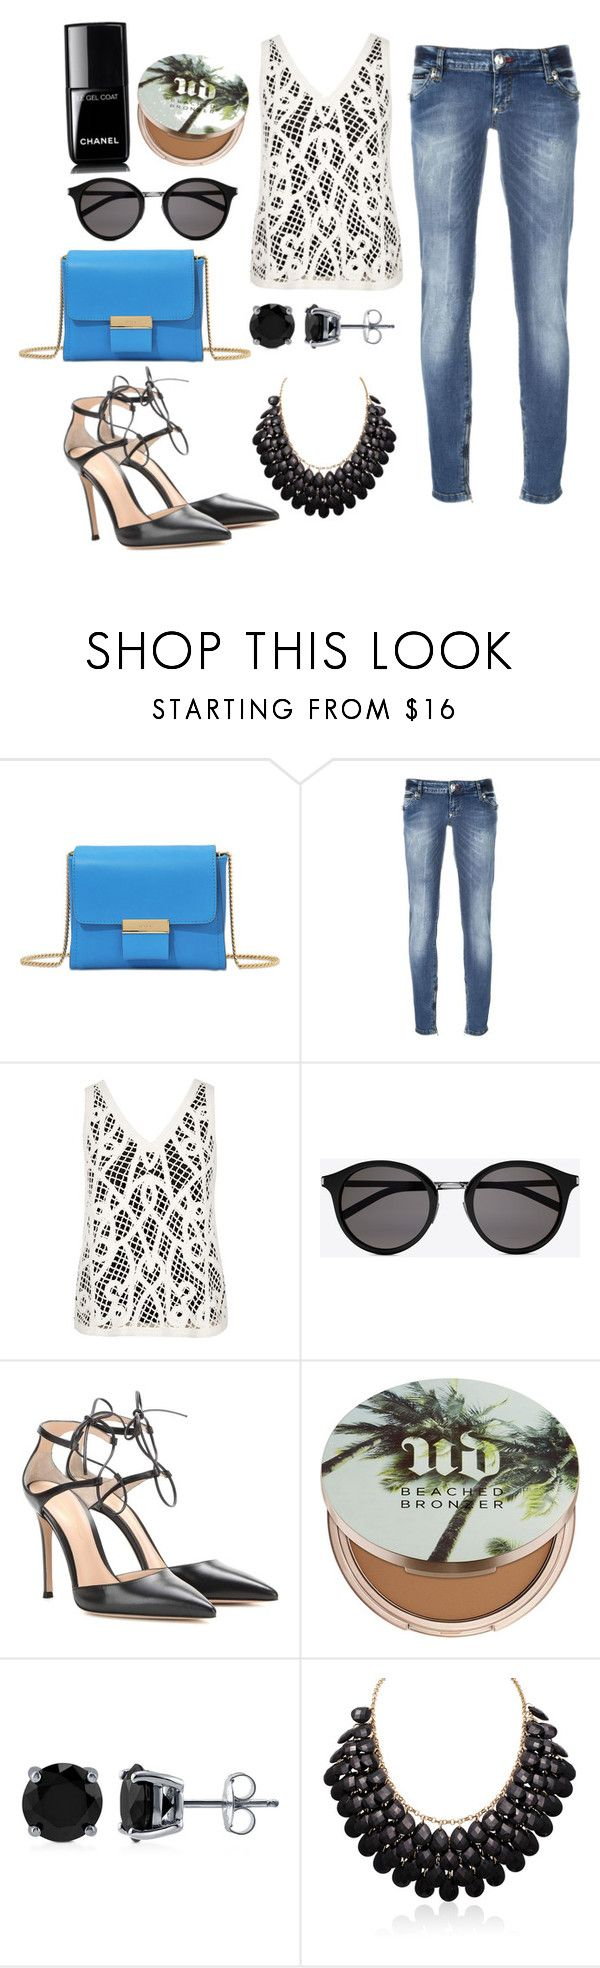 """Viva La Mexico!!"" by maringshauna ❤ liked on Polyvore featuring Gérard Darel, Philipp Plein, River Island, Yves Saint Laurent, Gianvito Rossi, Urban Decay, BERRICLE and Chanel"